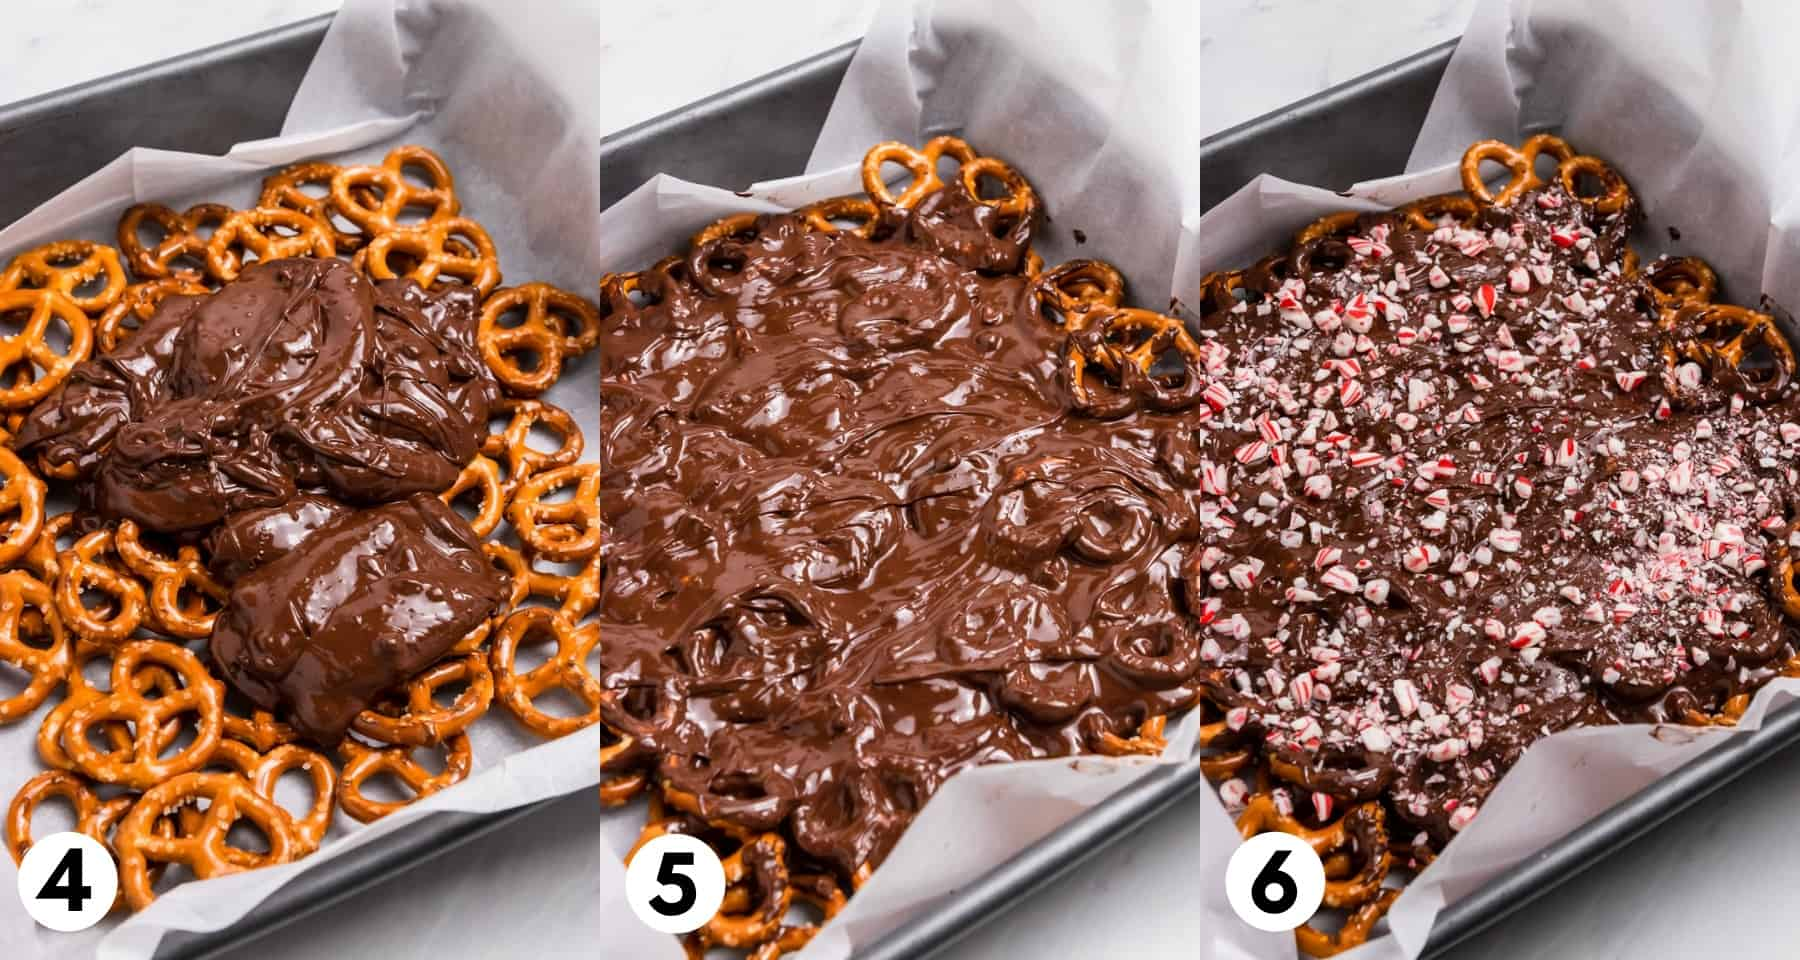 Dark chocolate poured over pretzels and spread over.